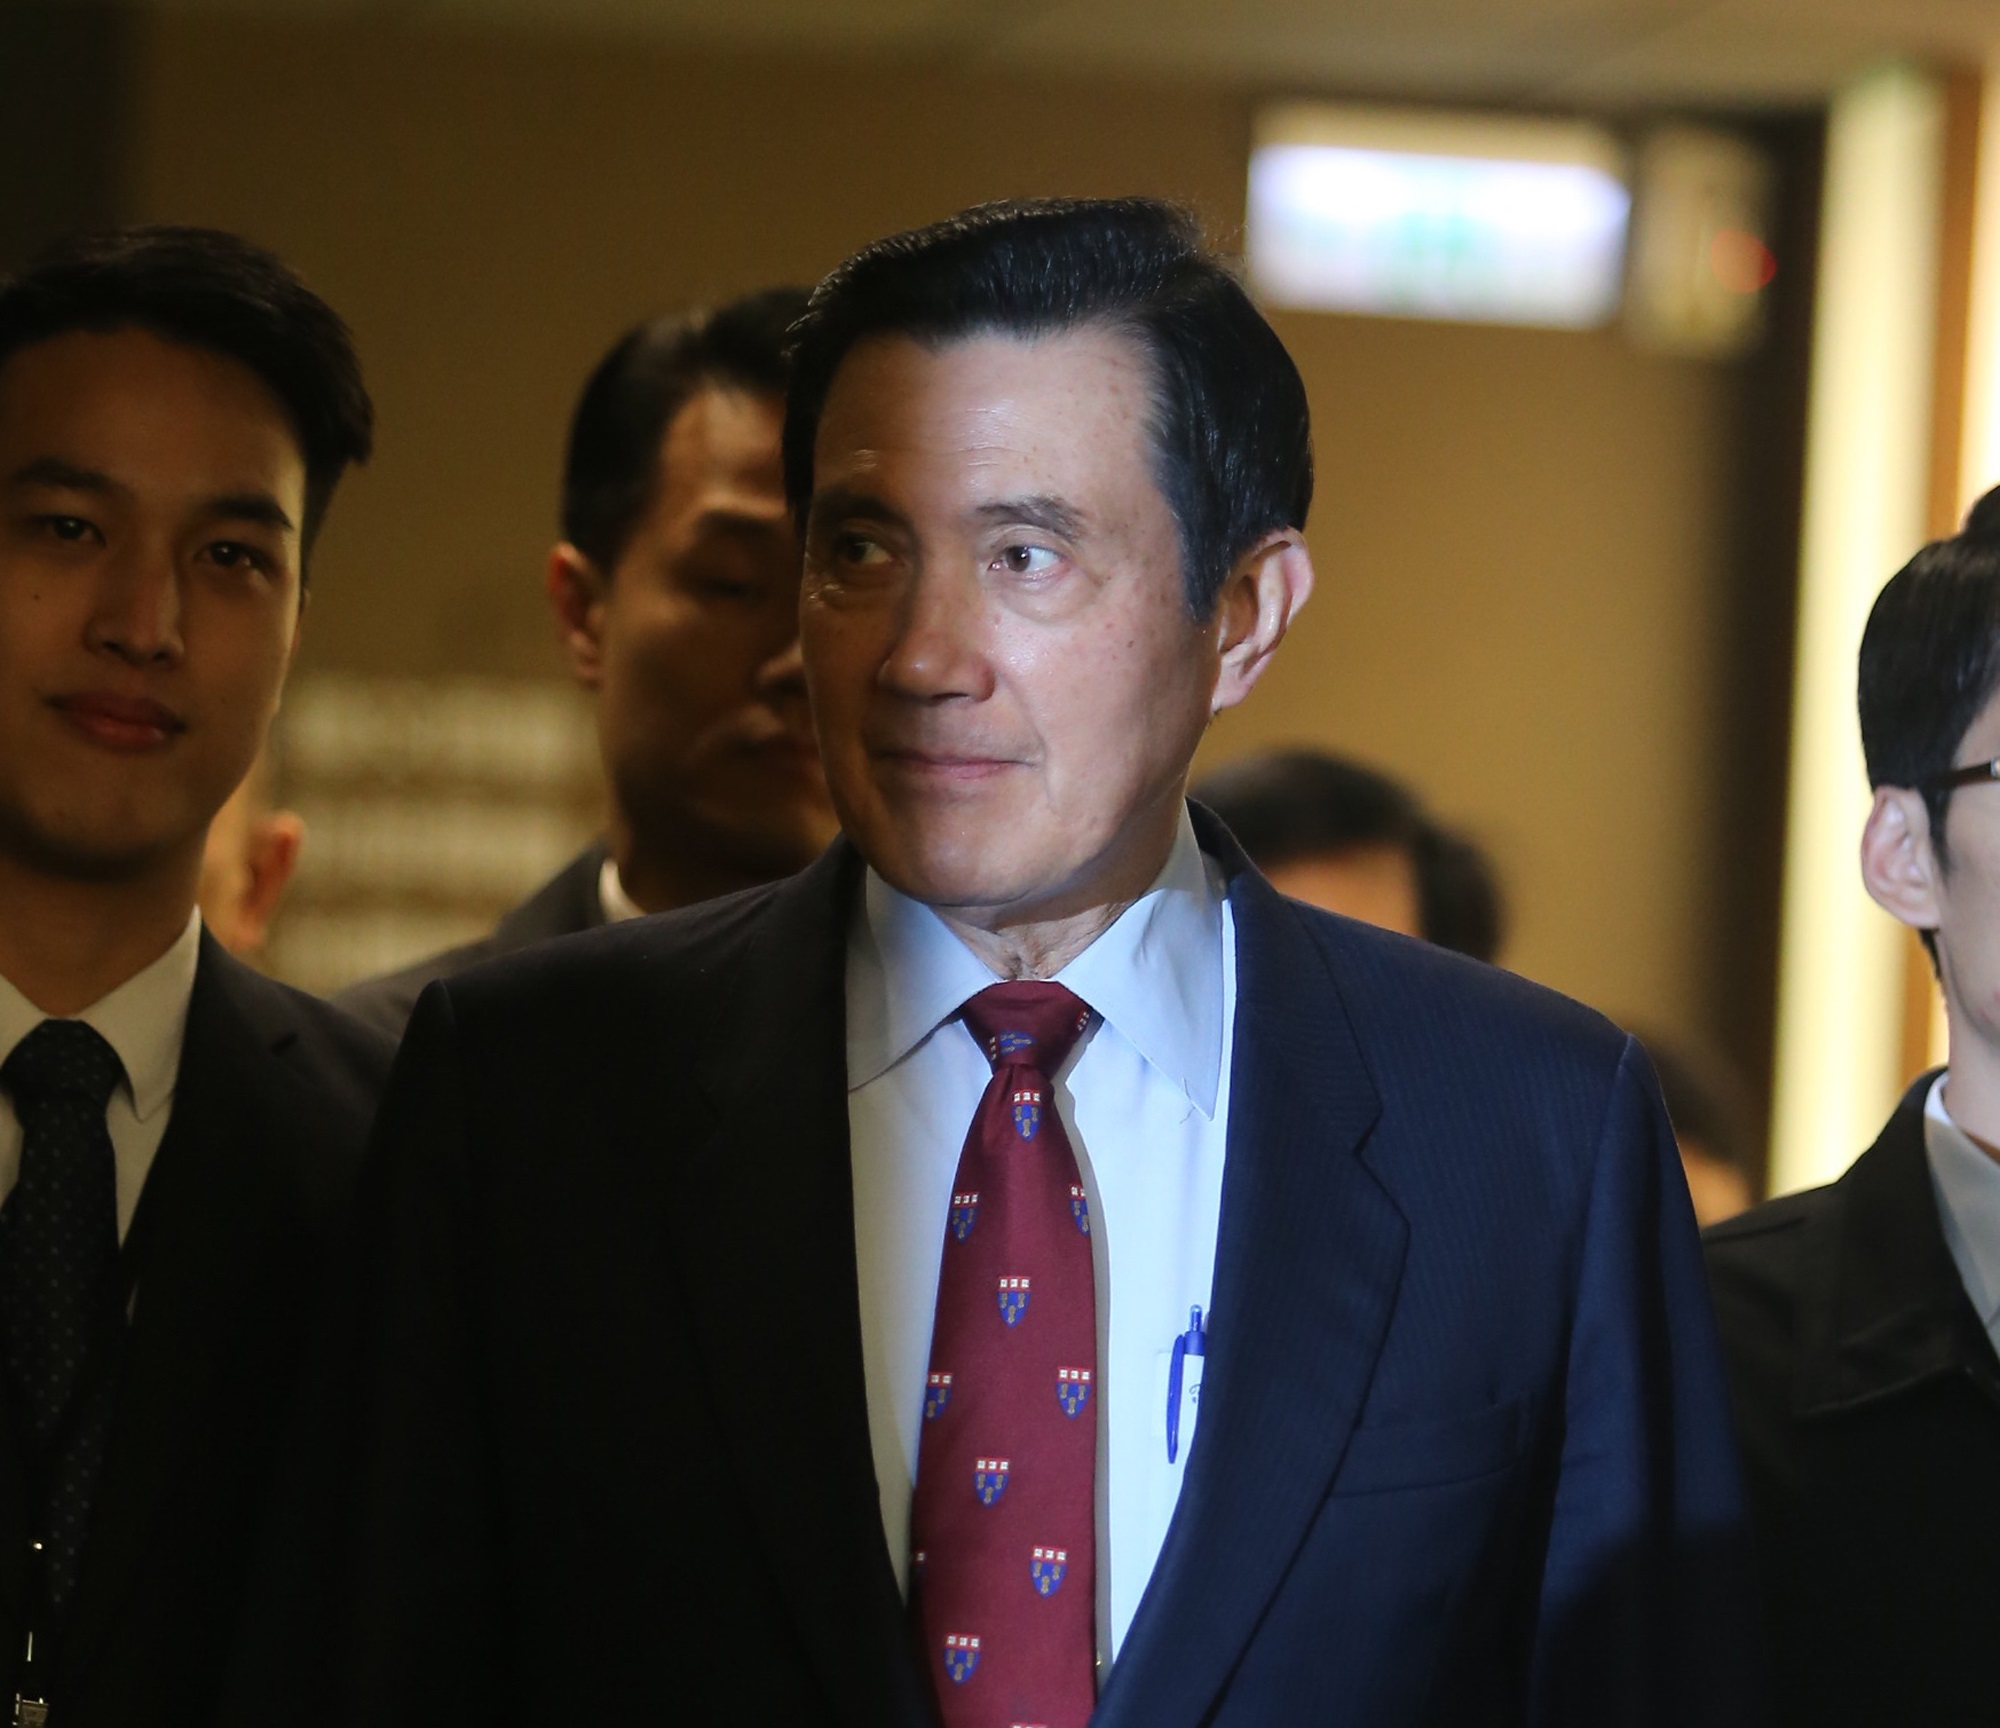 The image shows former Taiwan president Ma Ying-jeou (馬英九)